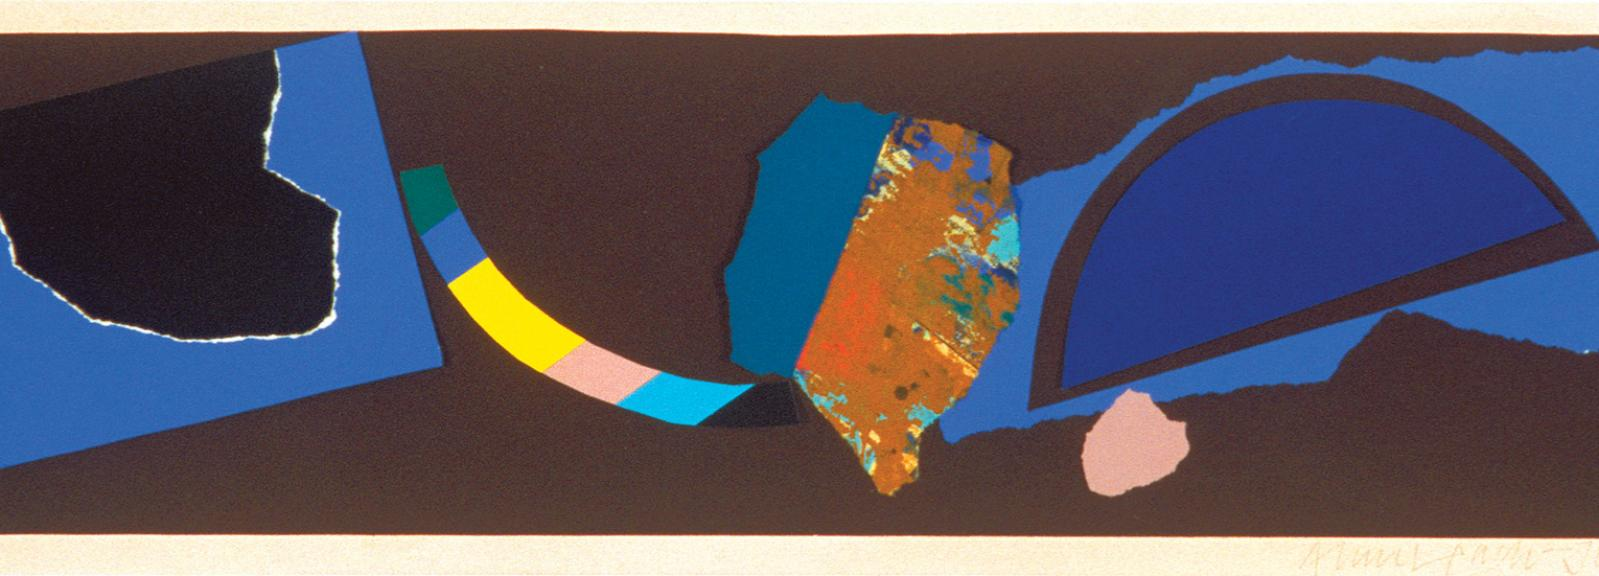 Collage c.1978, collage on paper, 16.5 x 64.8 cm, Bequest of John and Sunday Reed 1982, © the artist